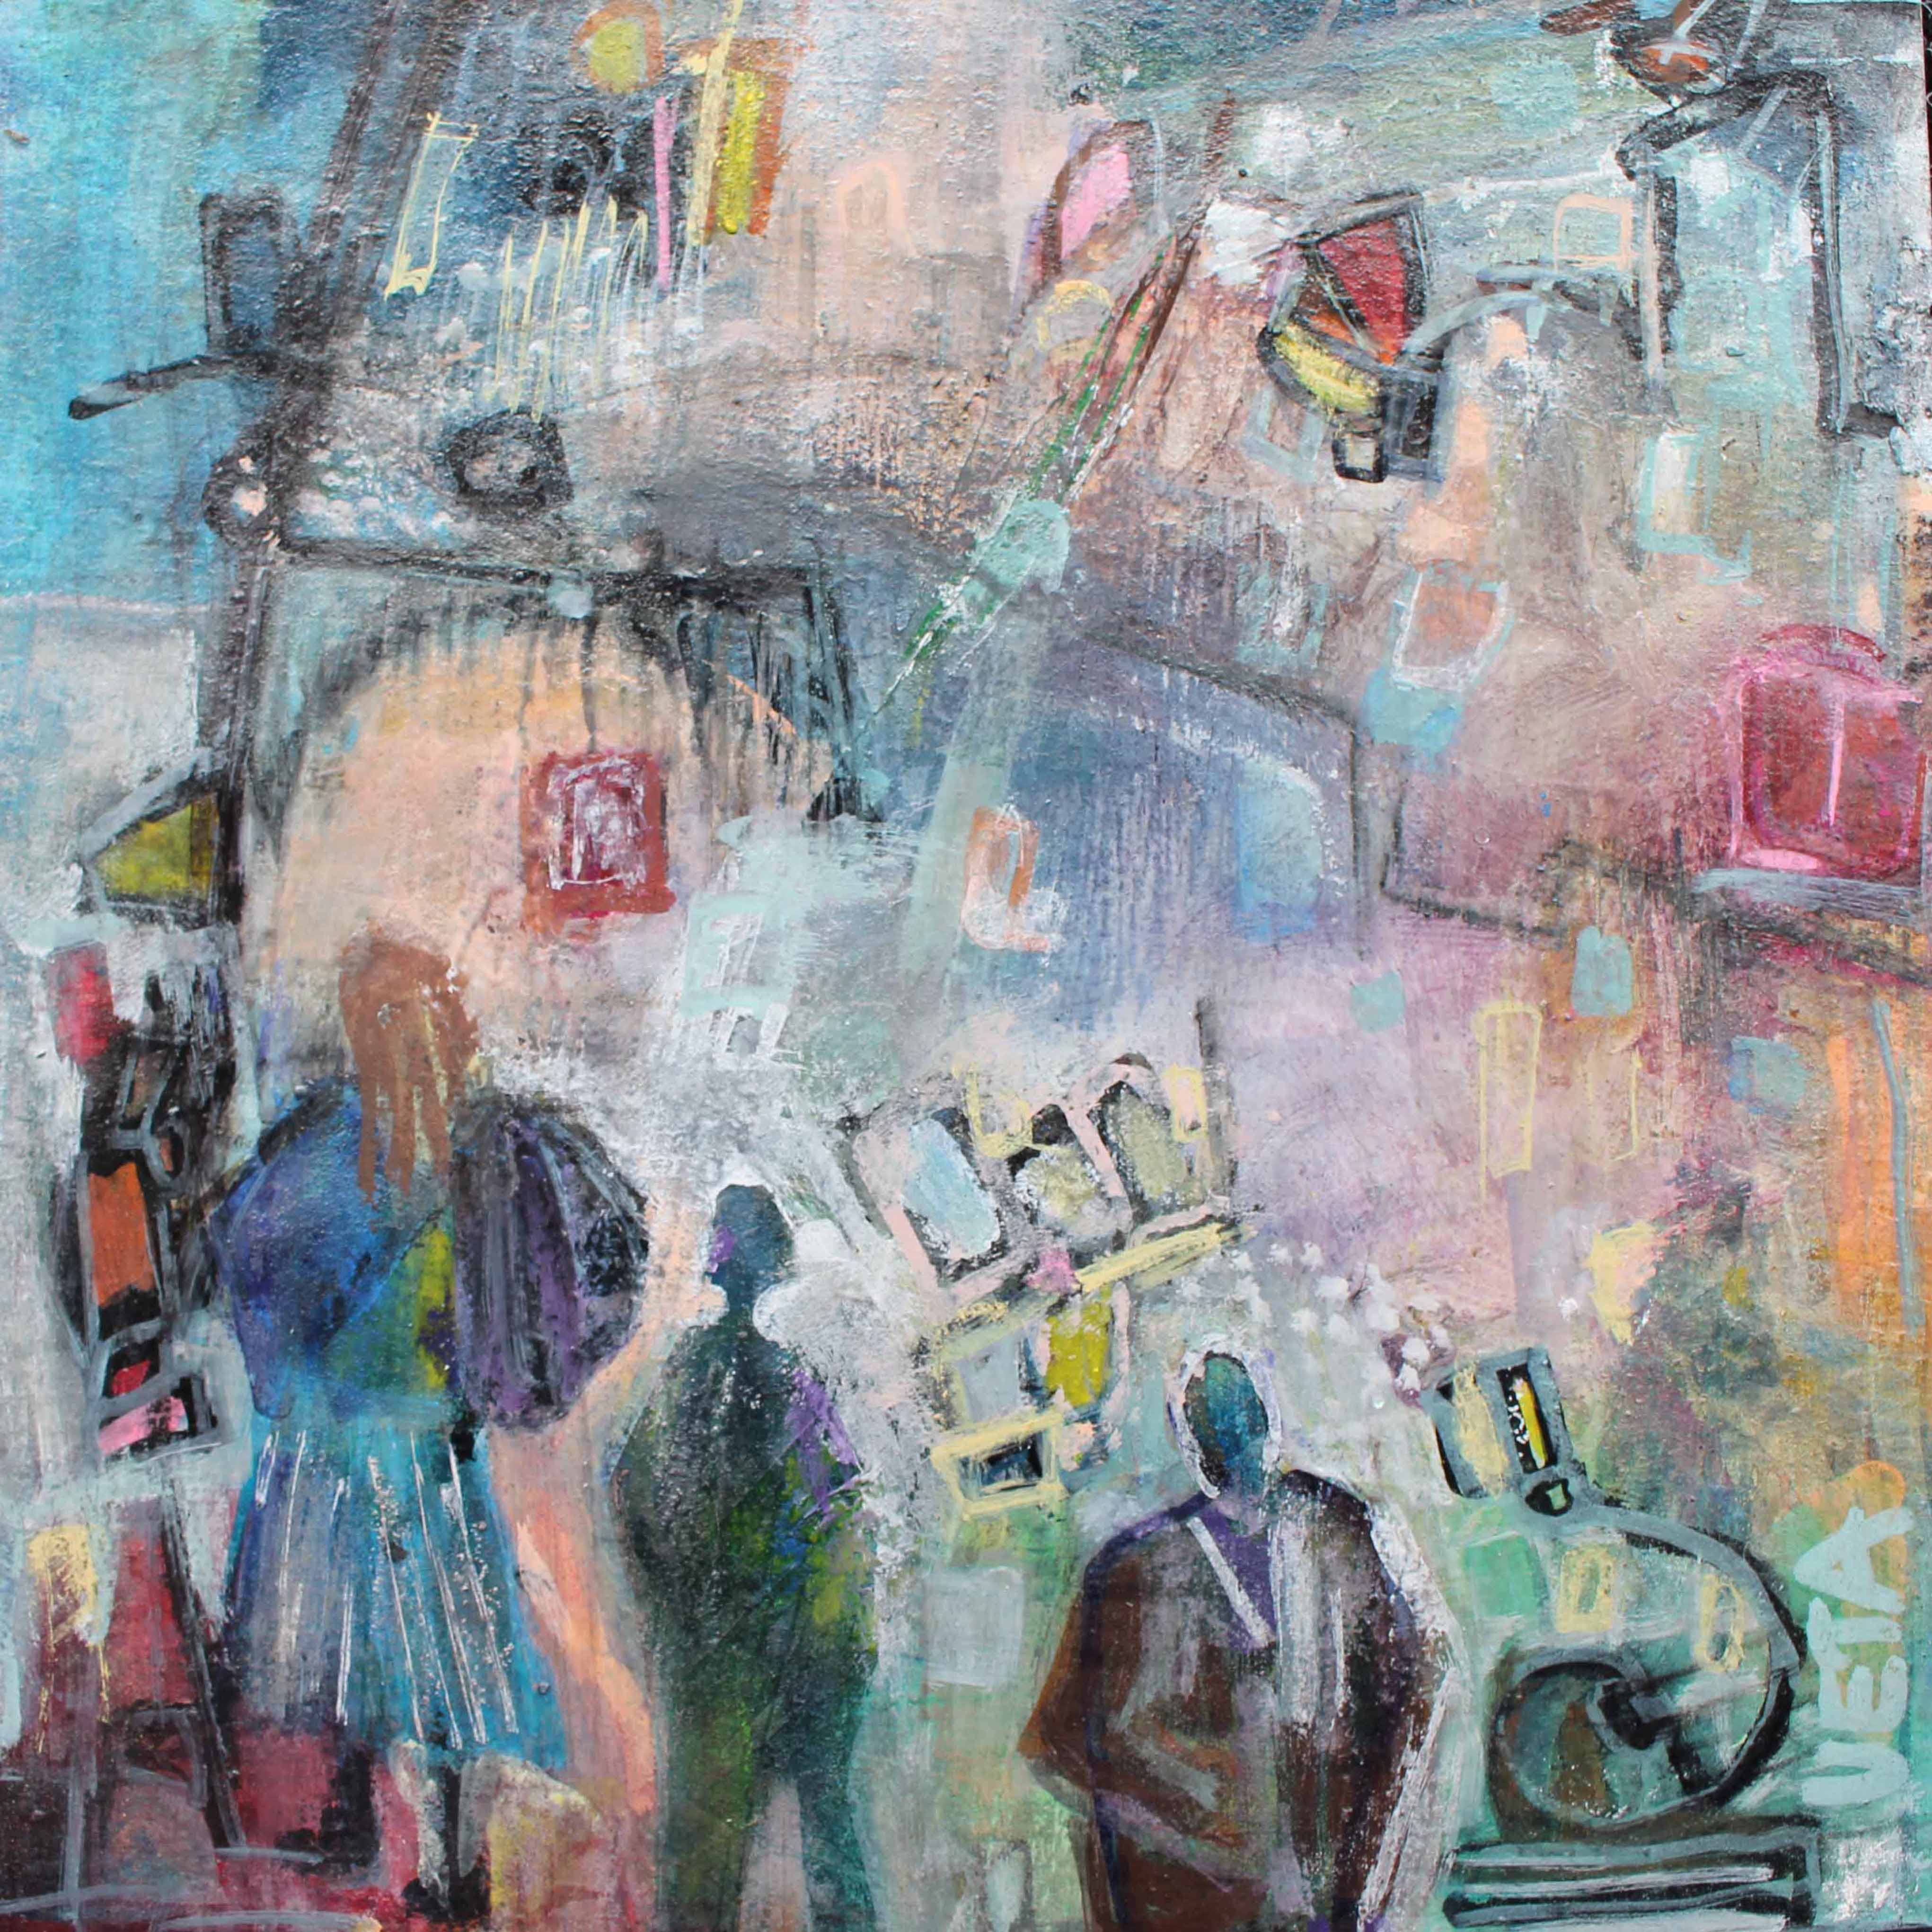 Places and People 3  185 x 185 mm Acrylic on card - framed $ 160